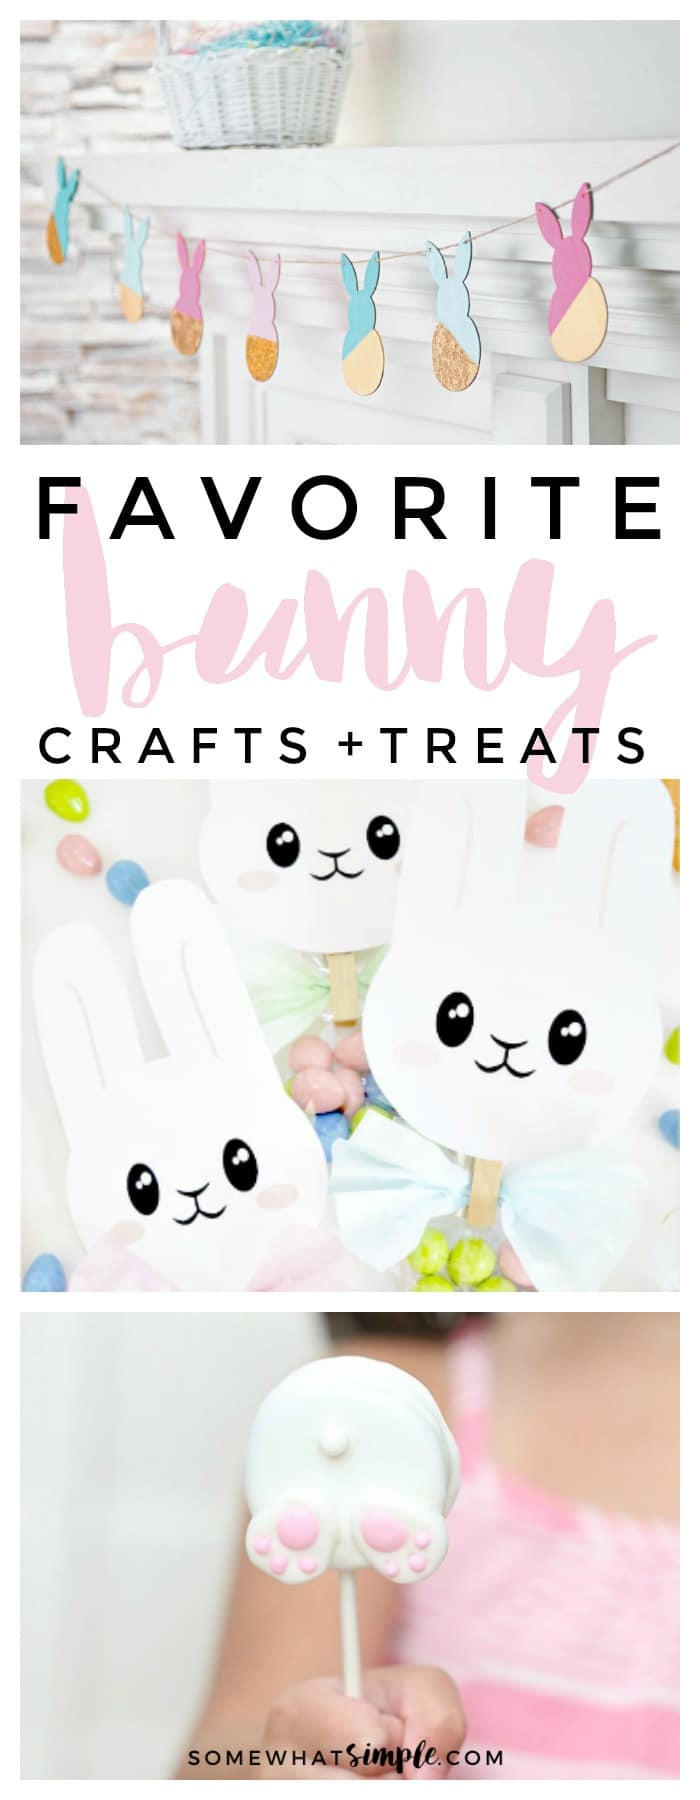 There's no better way to welcome Spring than by creating a few Easter Bunny Crafts!Here are some easy bunny crafts you can make to celebrate Easter! via @somewhatsimple